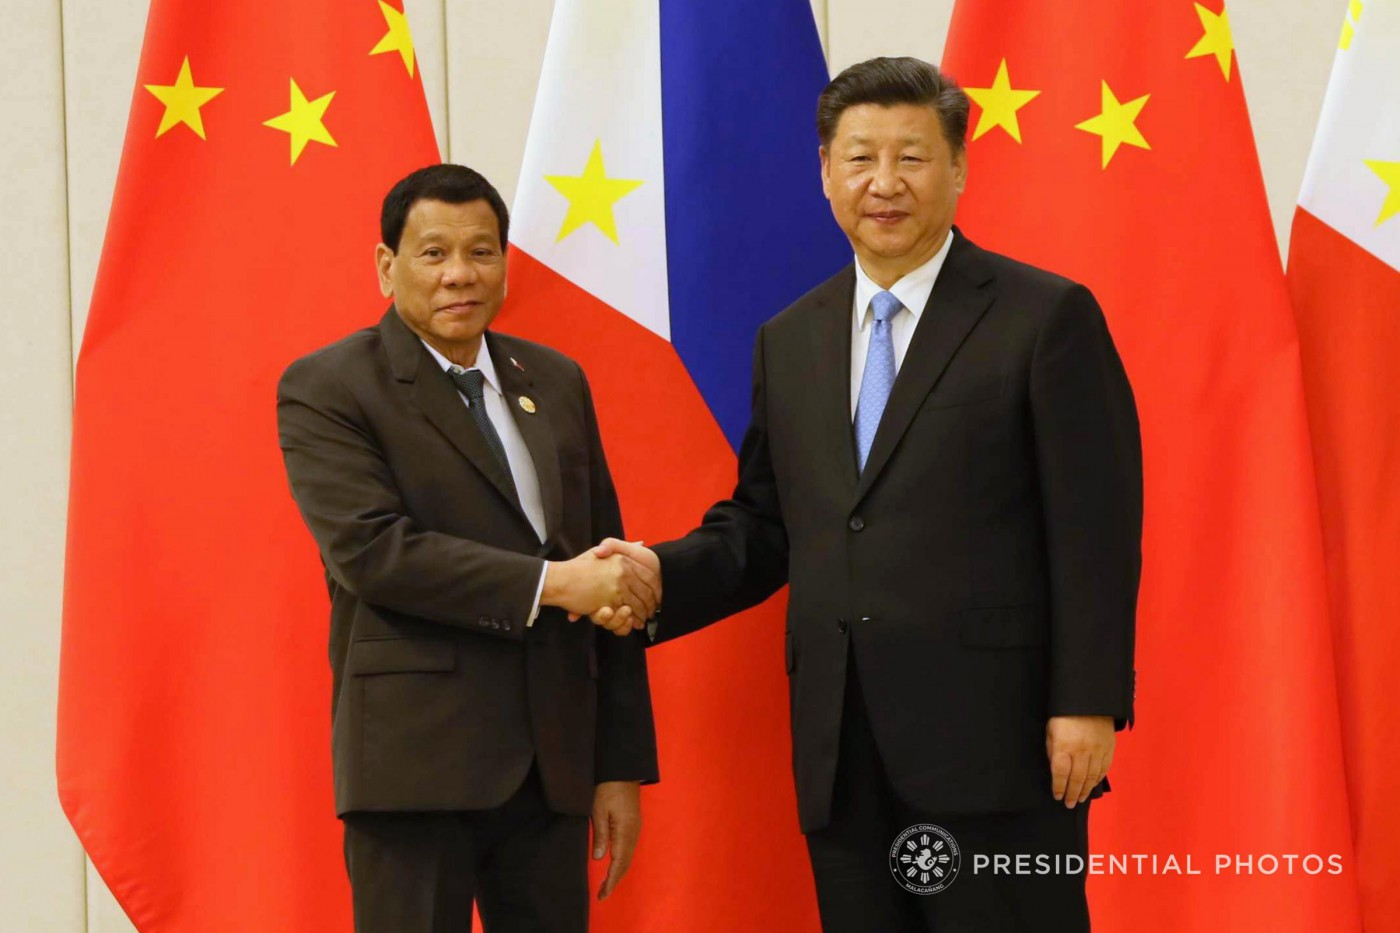 Working Together to Reinforce the Three Pillars for Golden Age of China-Philippines Relations